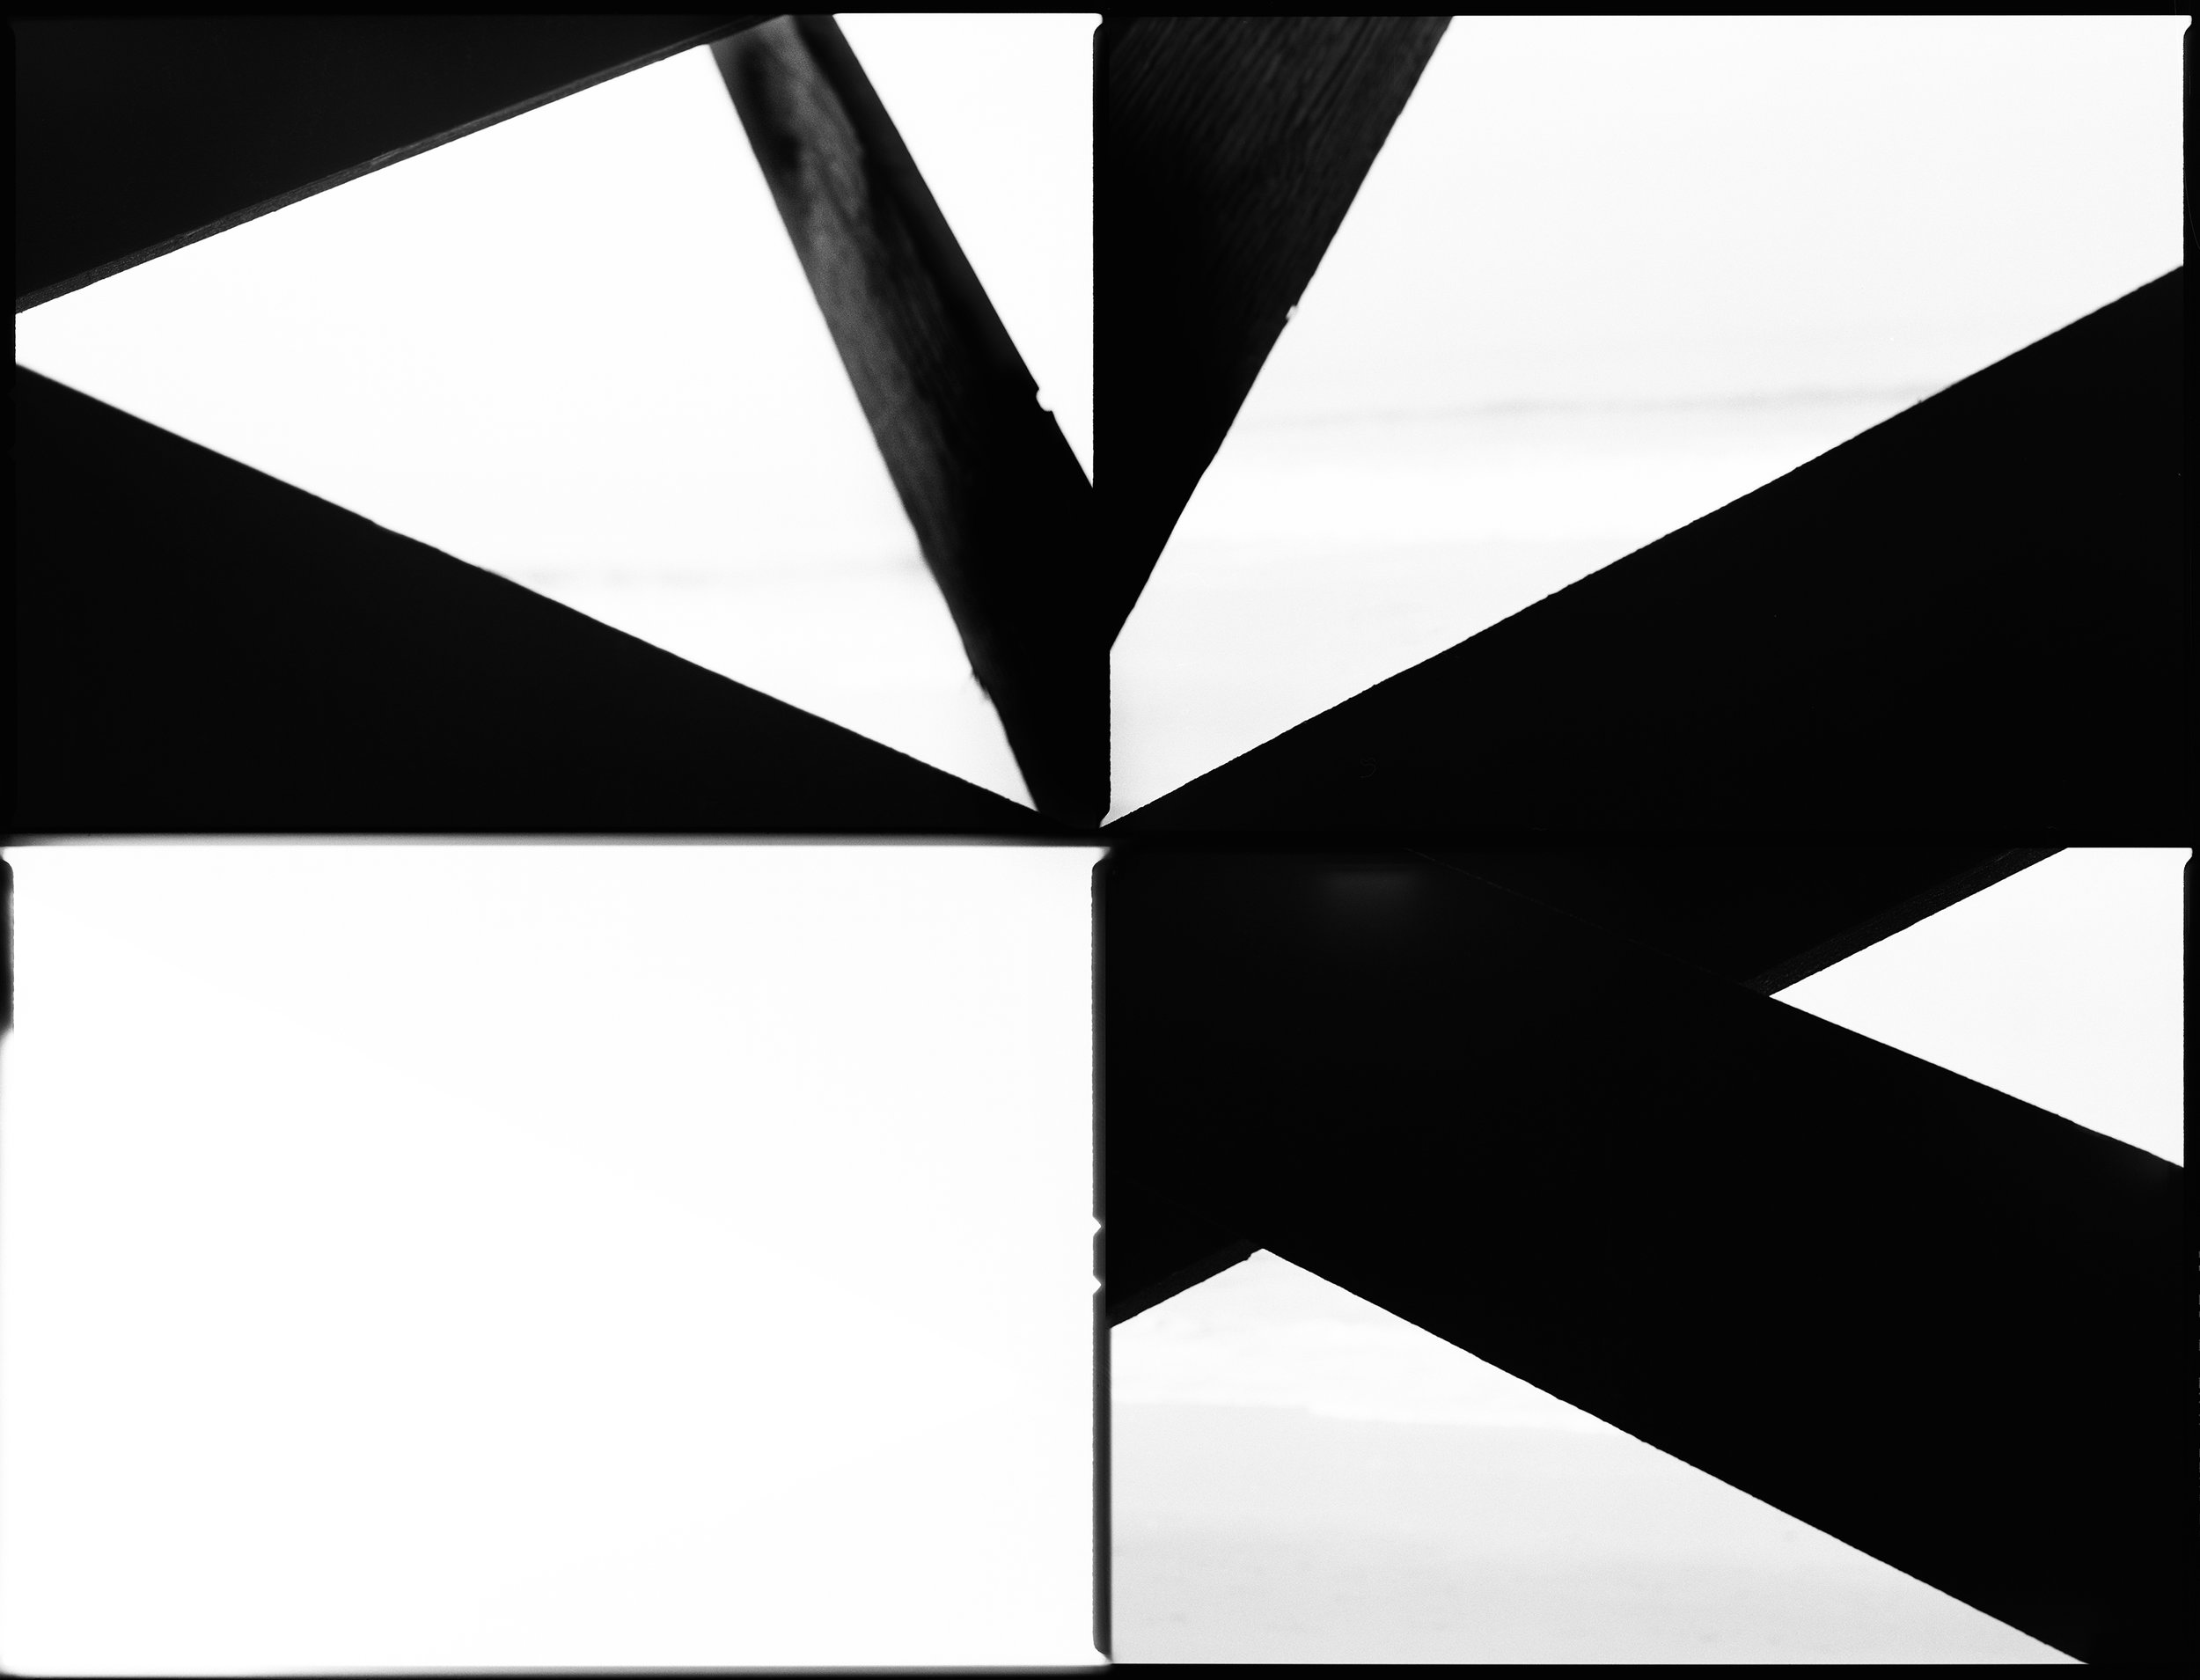 Untitled #26   (Nowhere)  , 2012/ archival pigment print,38 5/8 x 50 1/4  inches  ,  edition of 3 plus 2 AP